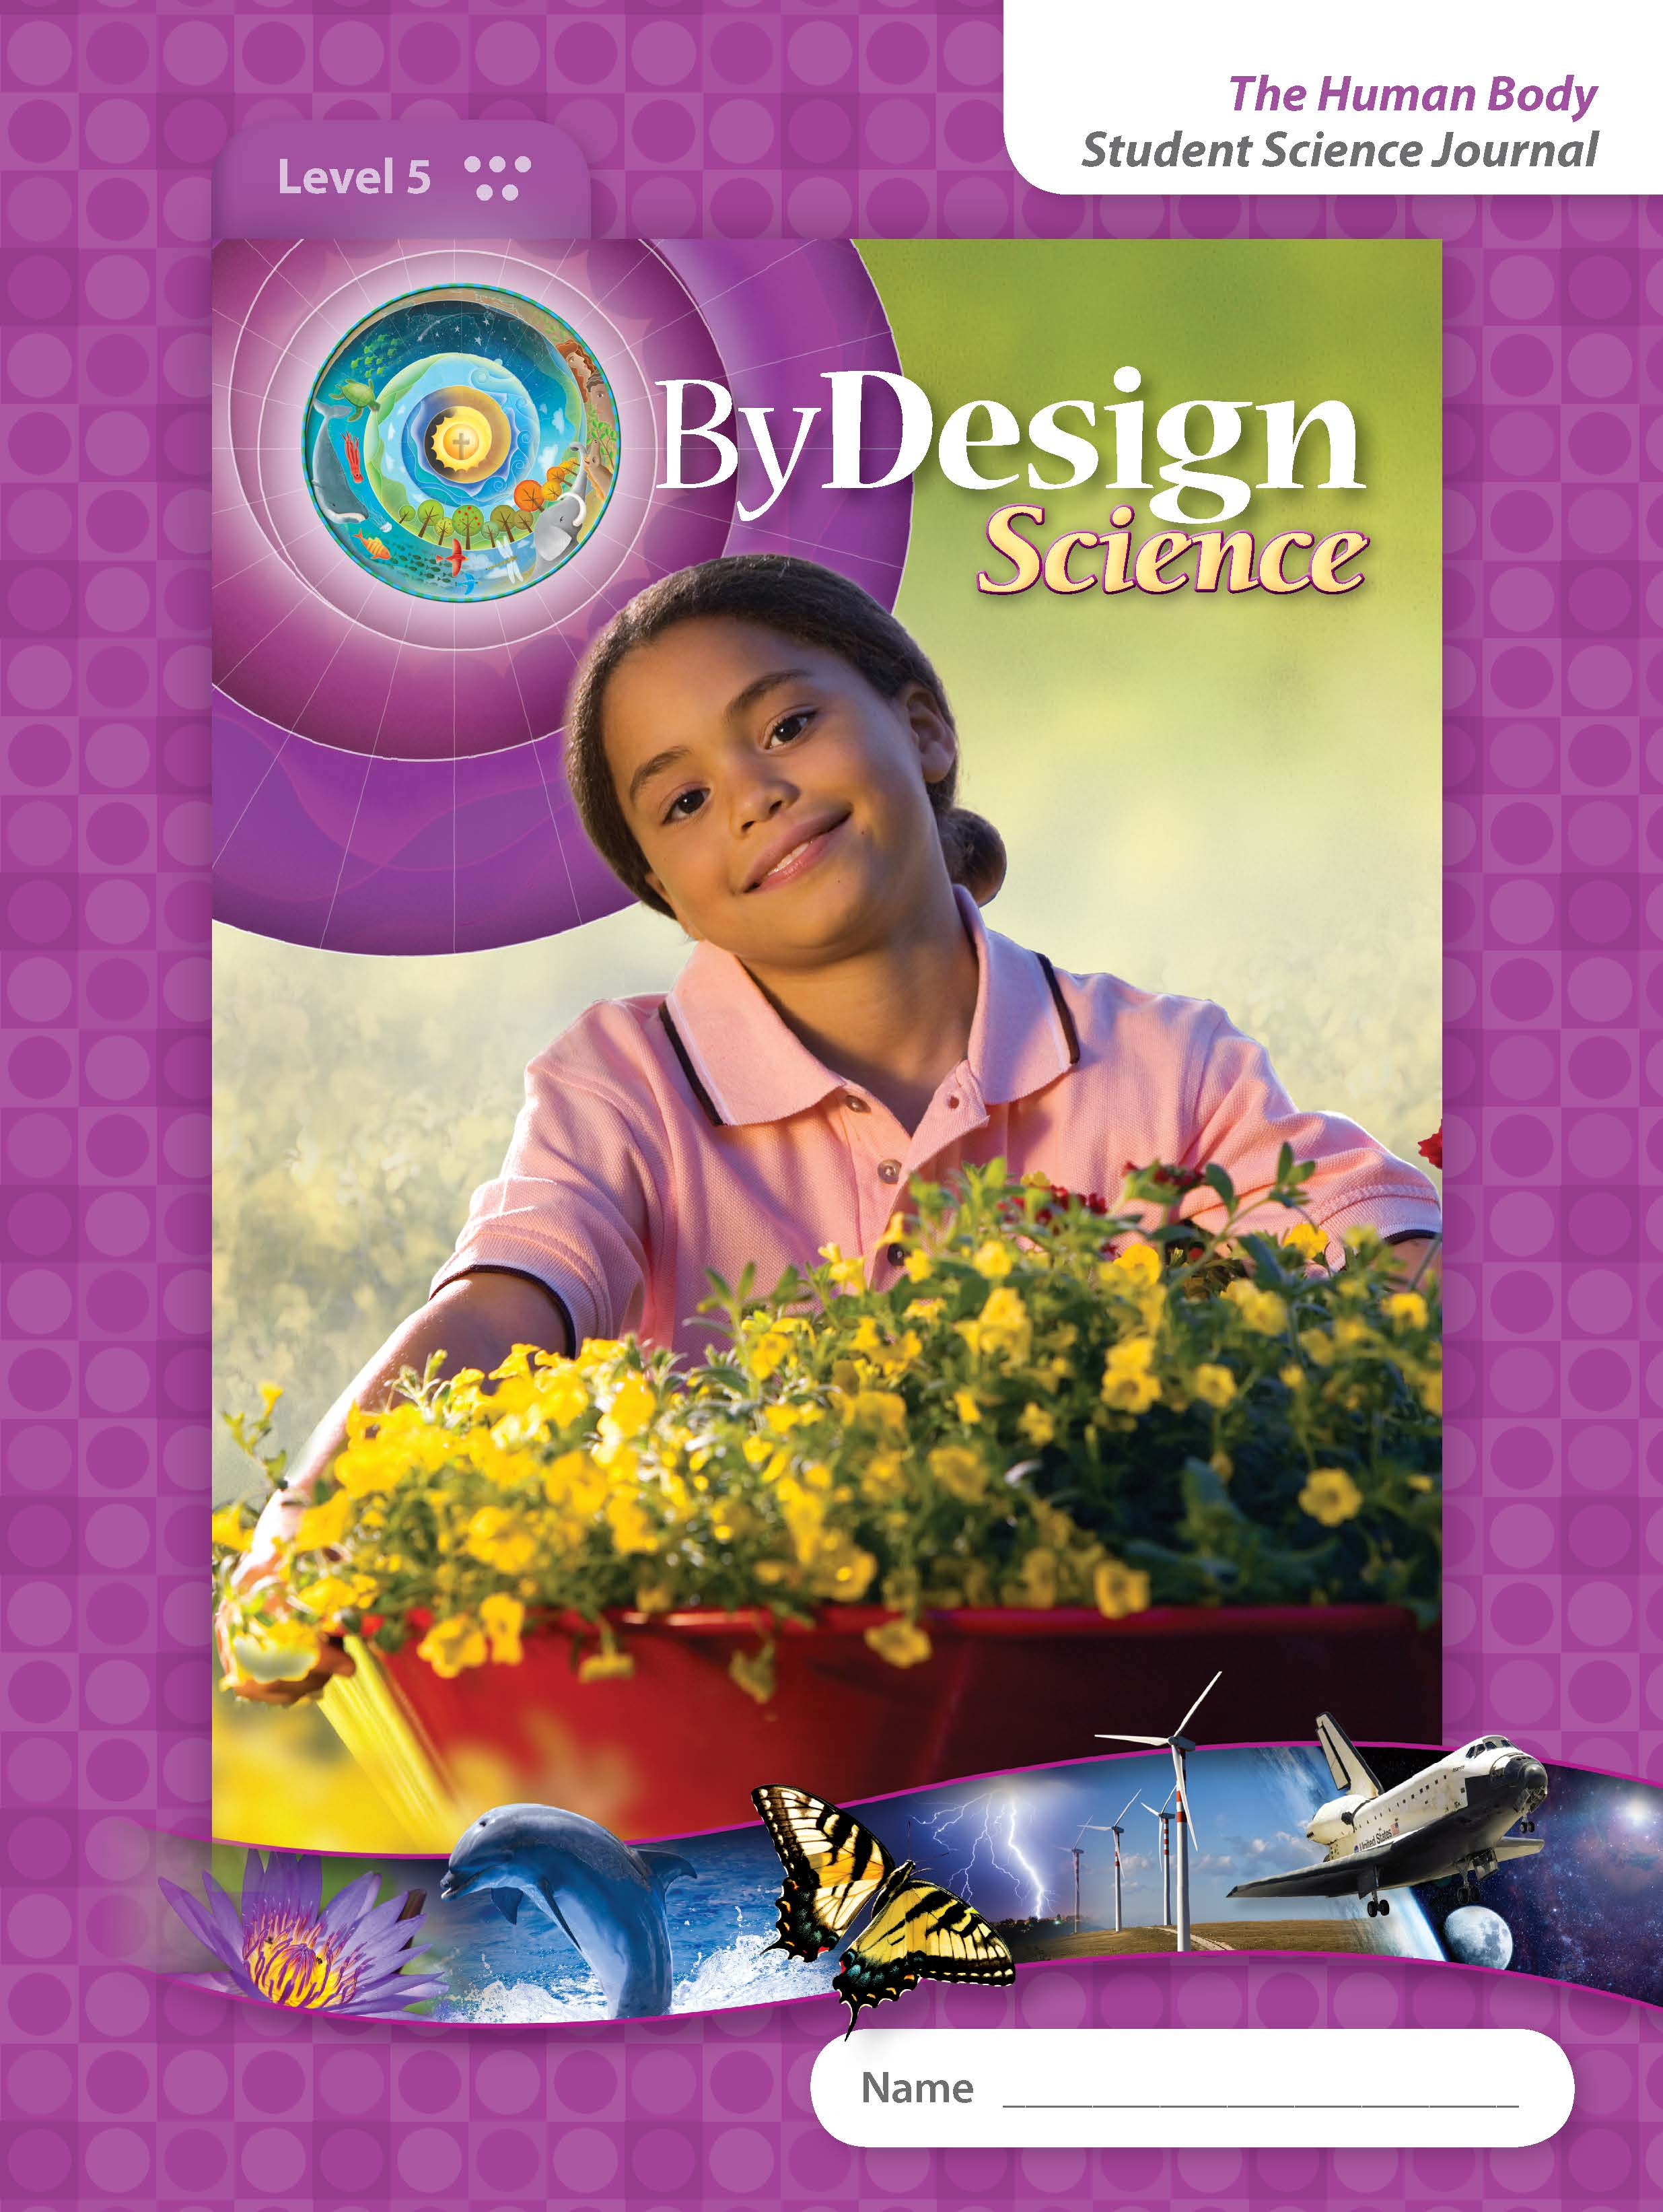 By Design Grade 5 Student Science Journal 1 Year License